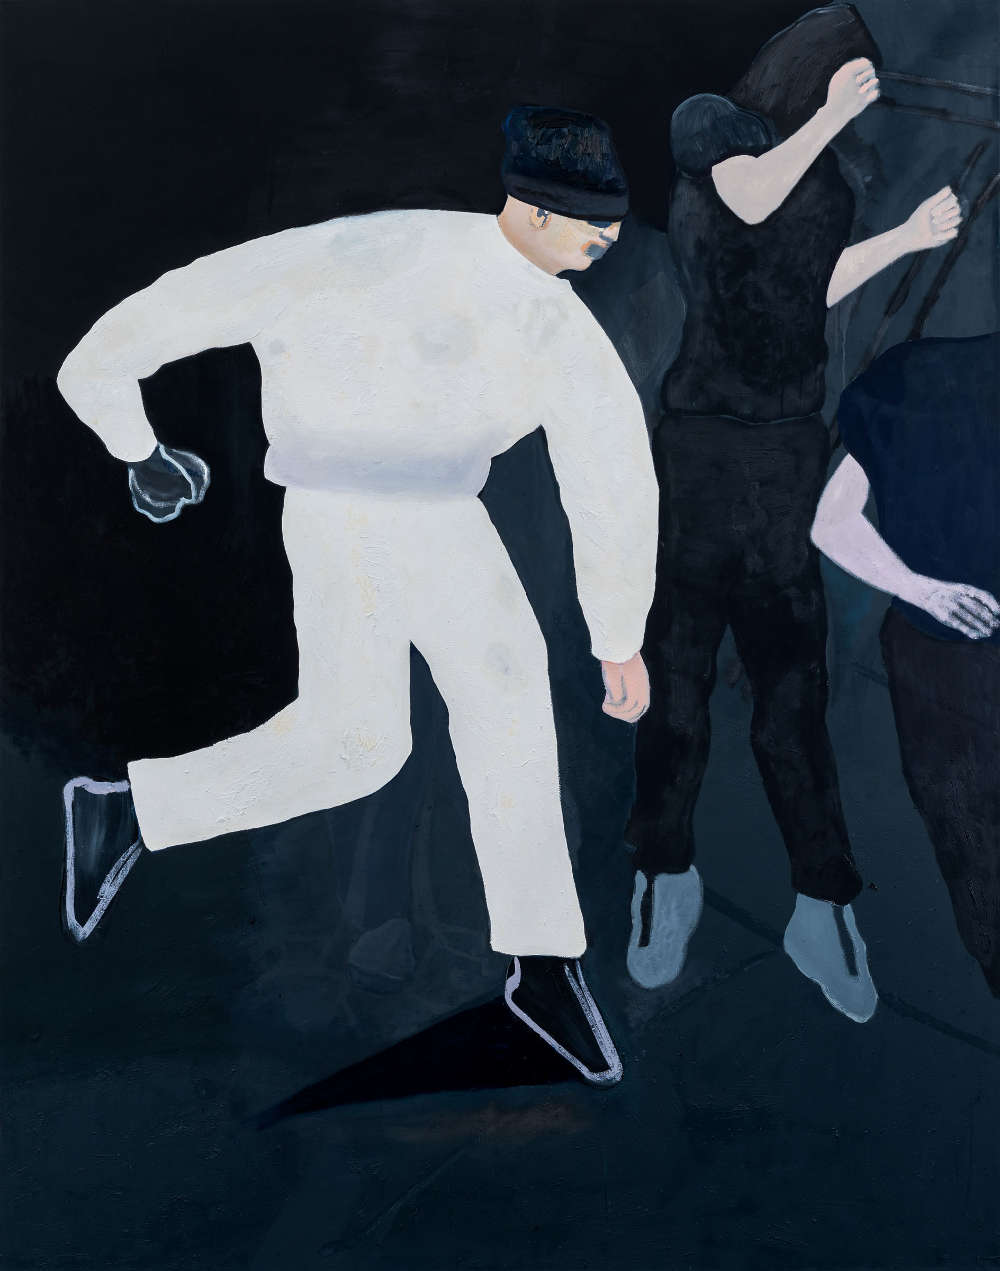 Florian Krewer, here we go again, 2018. Oil on canvas 94 1/2 x 74 3/4 inches 240 x 190 cm